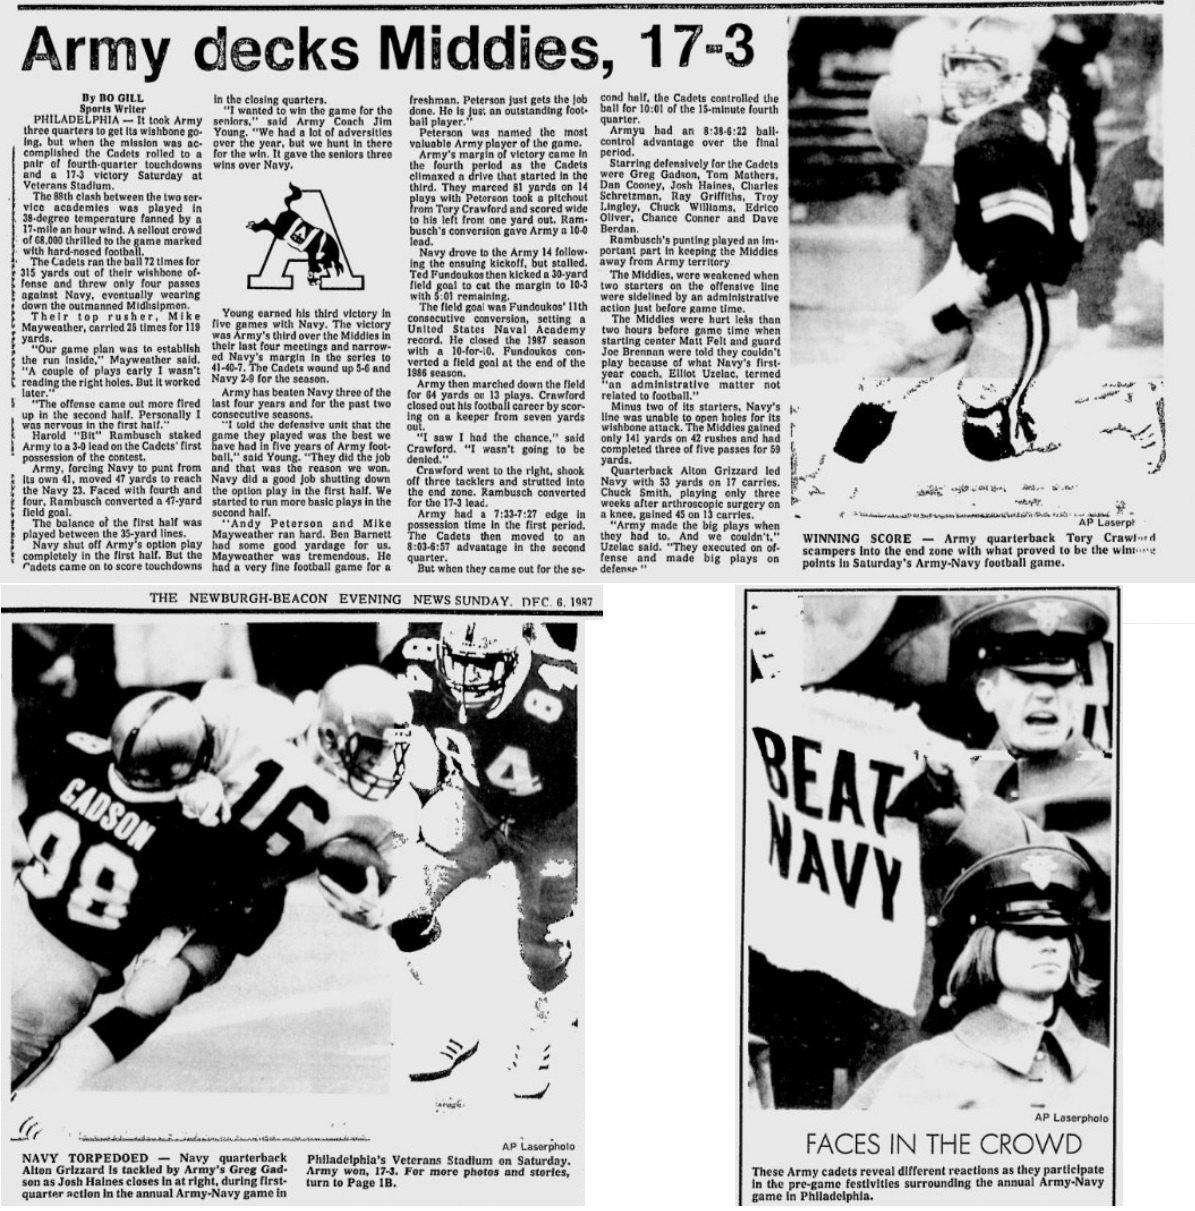 armyfb_1987_vsnavy_eveningnews_dec61987